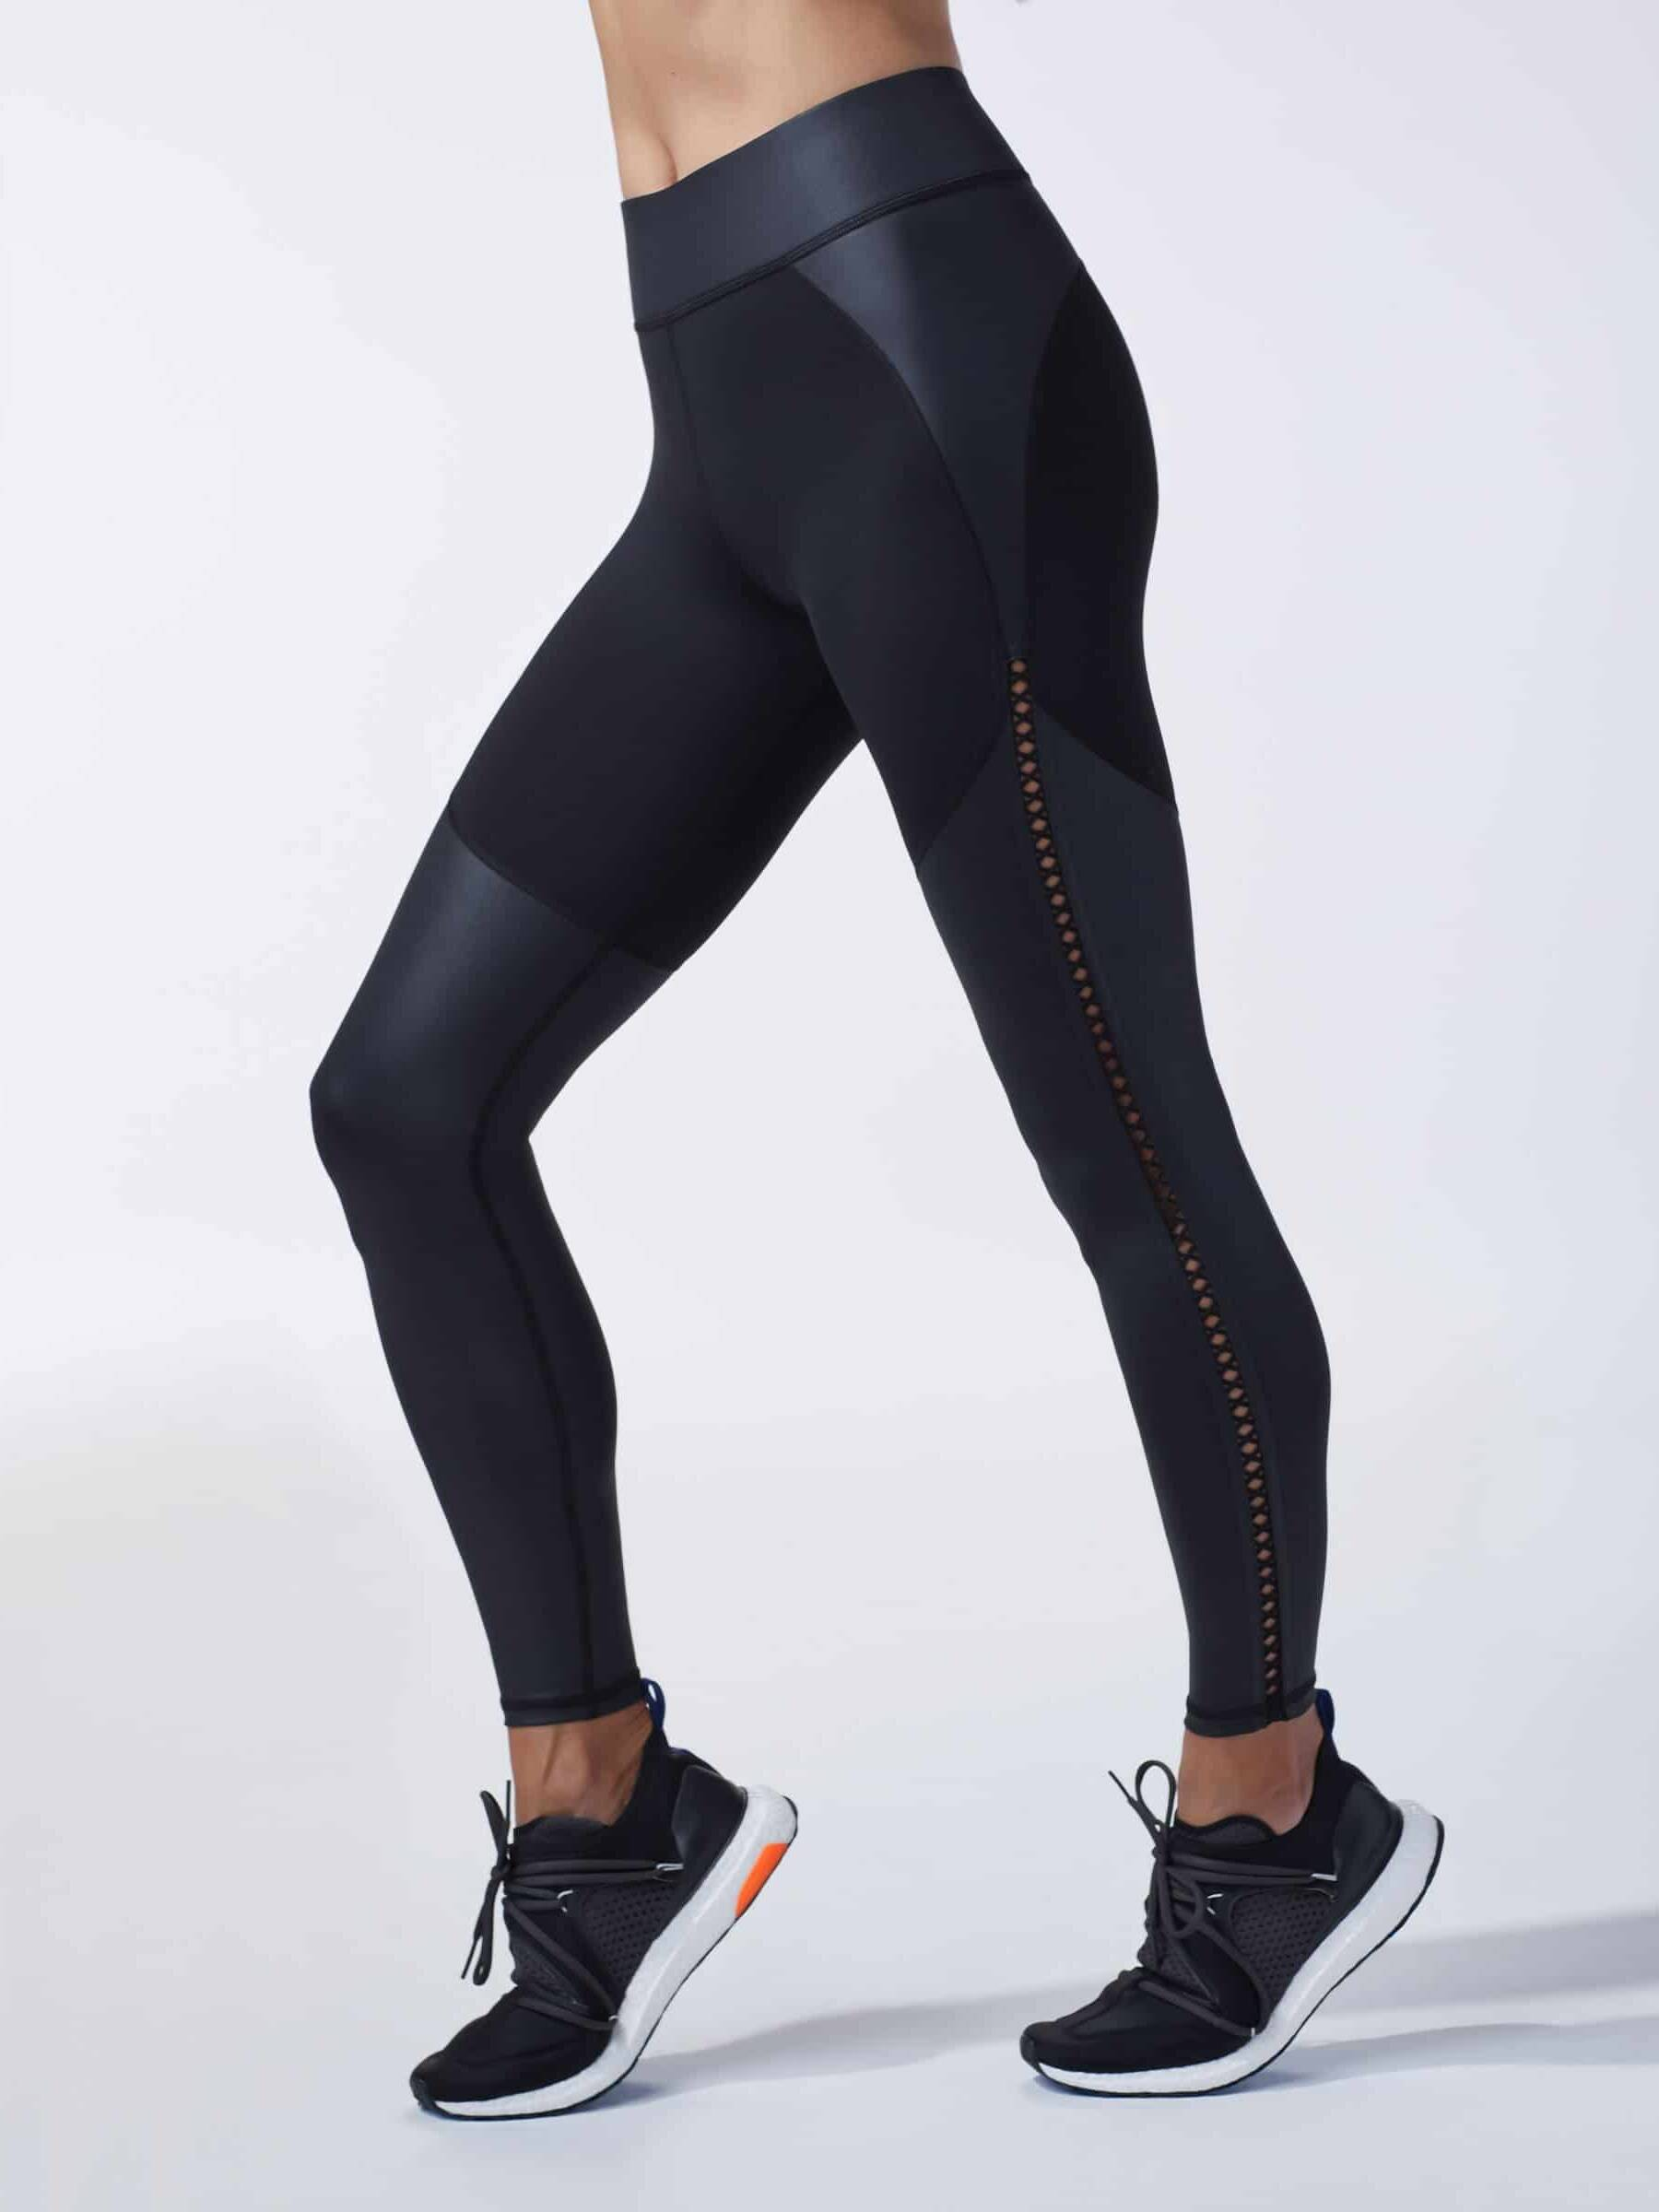 Michi, Michi NY, Performance Leggings, Liquid Leggings, Funktionslegging, Tights, teure Leggings, Luxus Leggings, Yoga, Sport Leggings, Fitness, Fitnessleggings, Sportleggings, US Marke